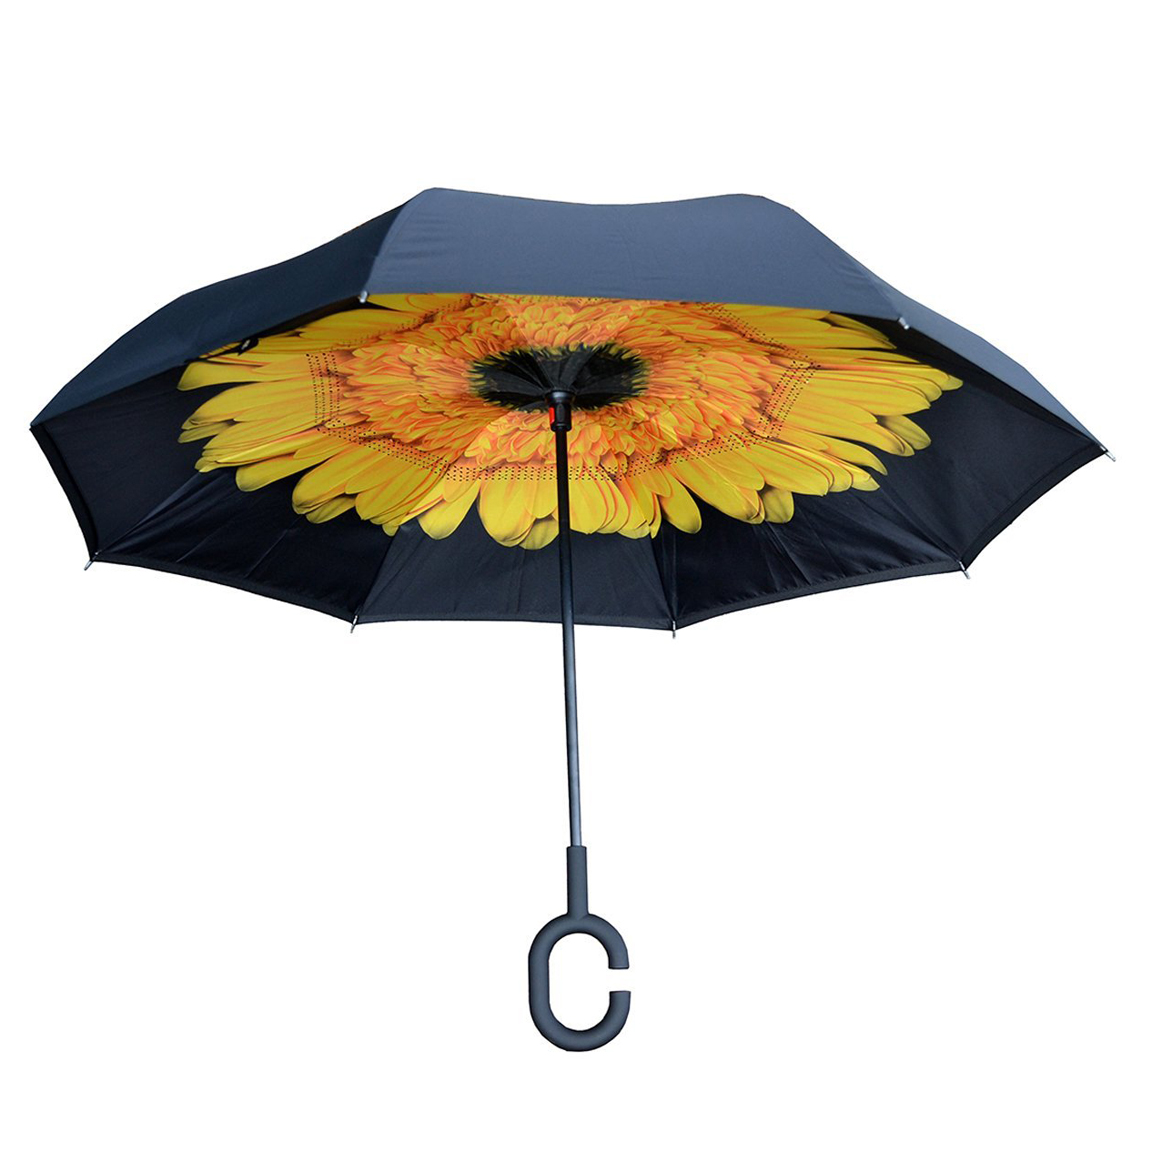 Topsy Turvy Inverted Reversible Umbrella Black With Sunflower